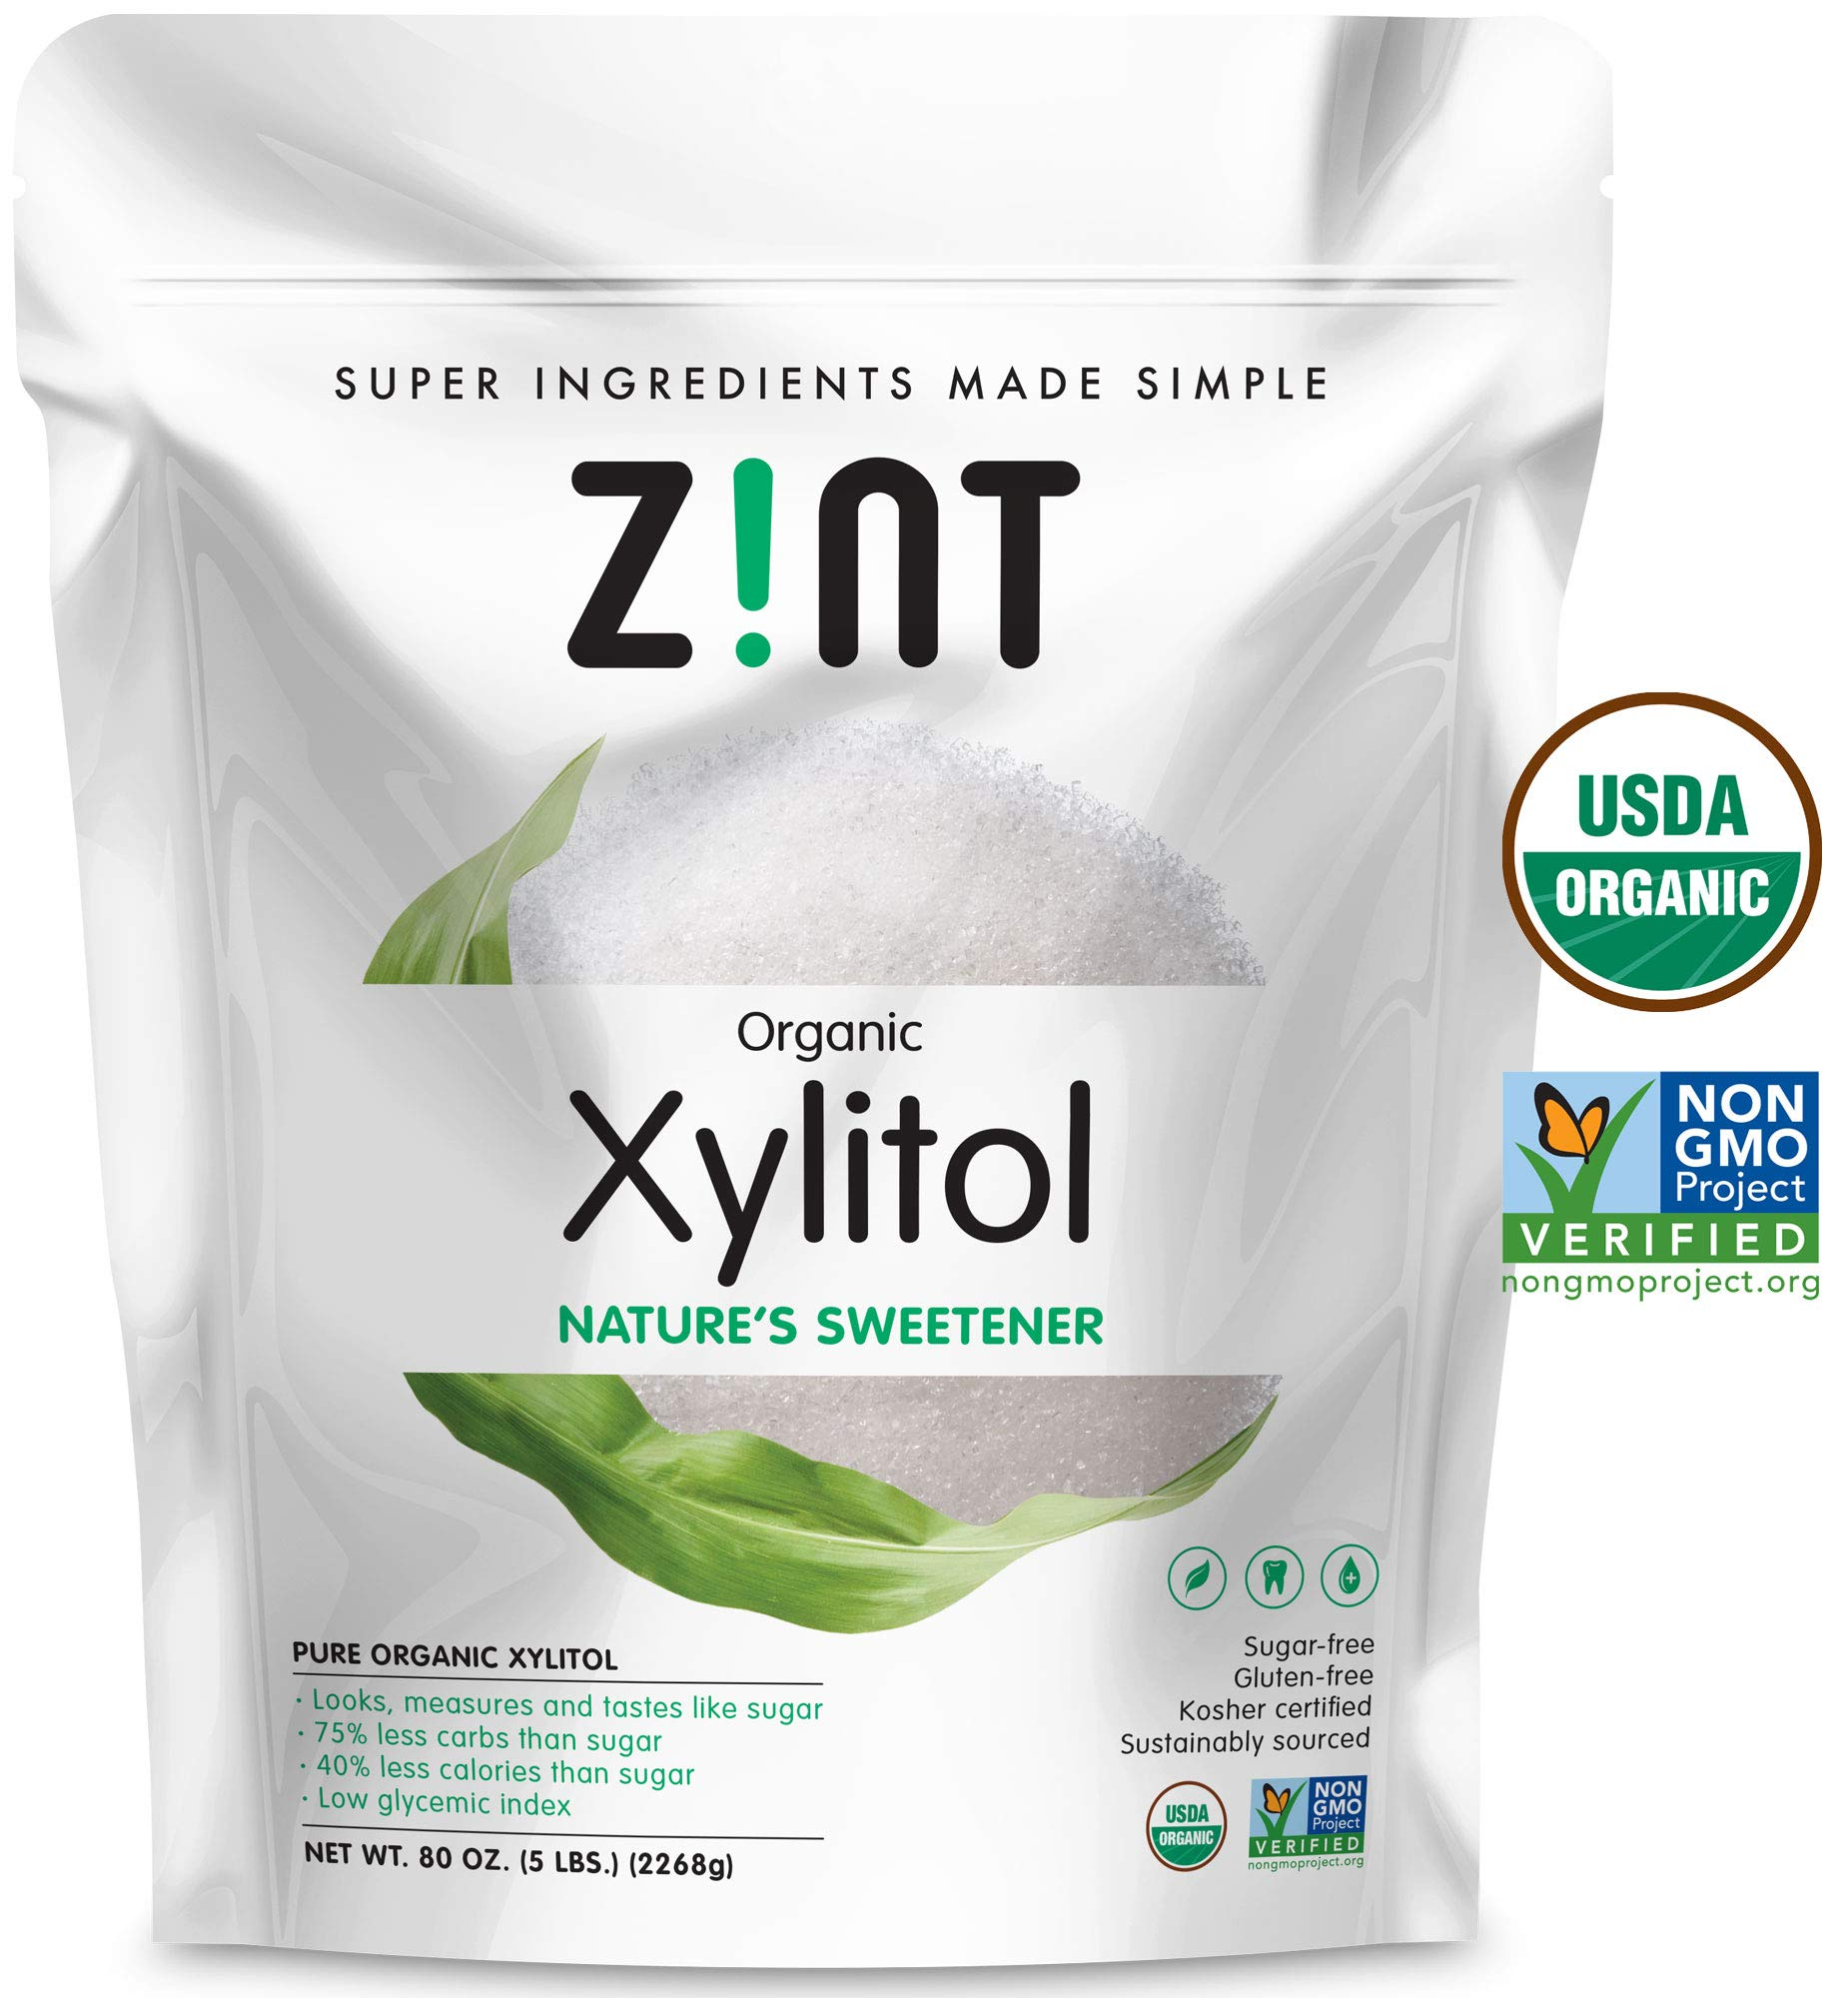 Zint Organic Xylitol Sweetener (5 lbs): USDA Certified Natural Sugar Free Substitute, Non GMO, Low Glycemic Index, Measures & Tastes Like Sugar, 80 Ounce by Zint